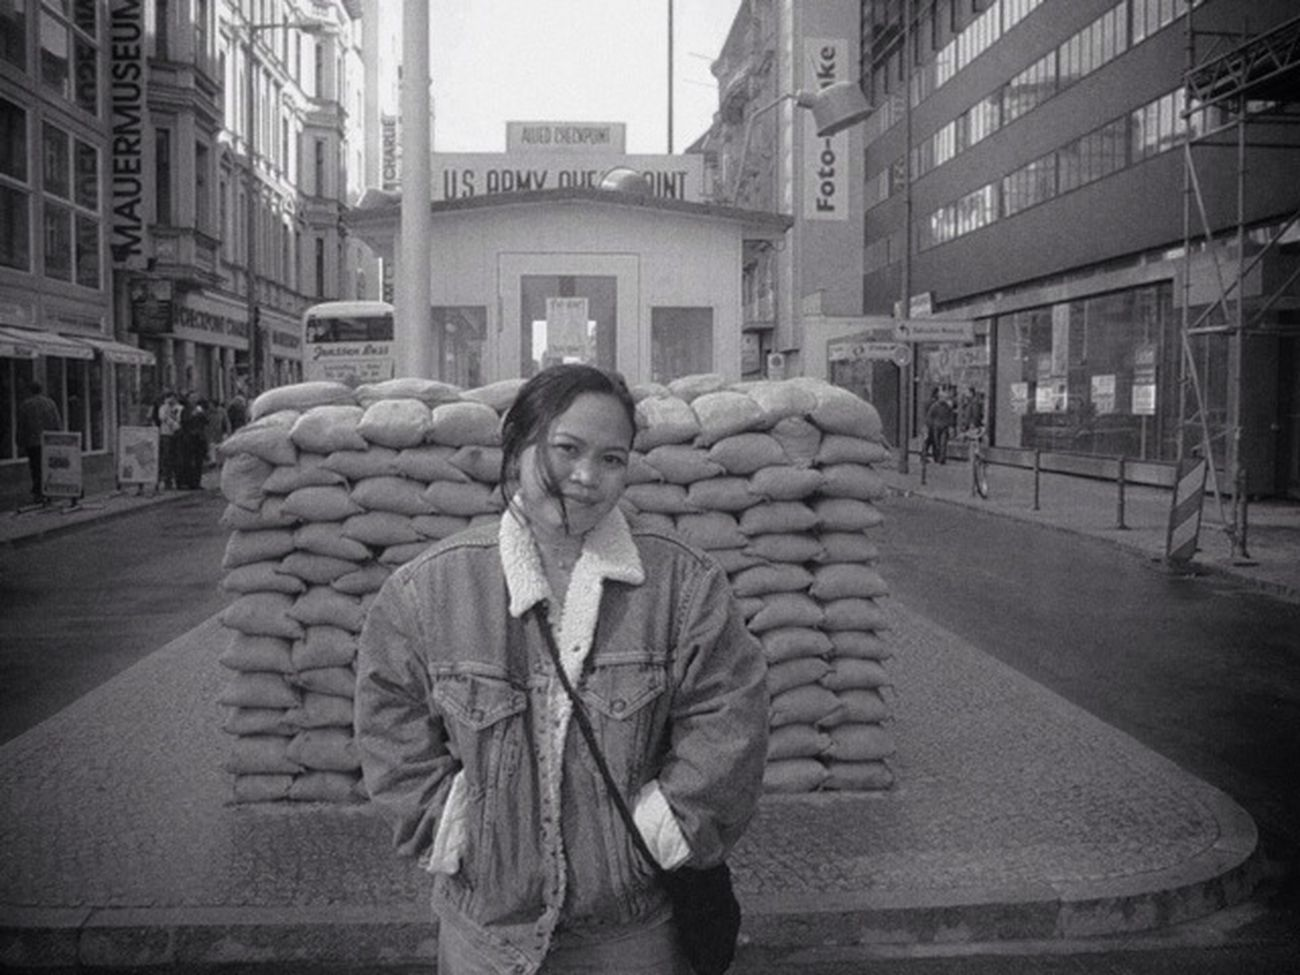 Blackandwhite Throwback Berlin Checkpointcharlie